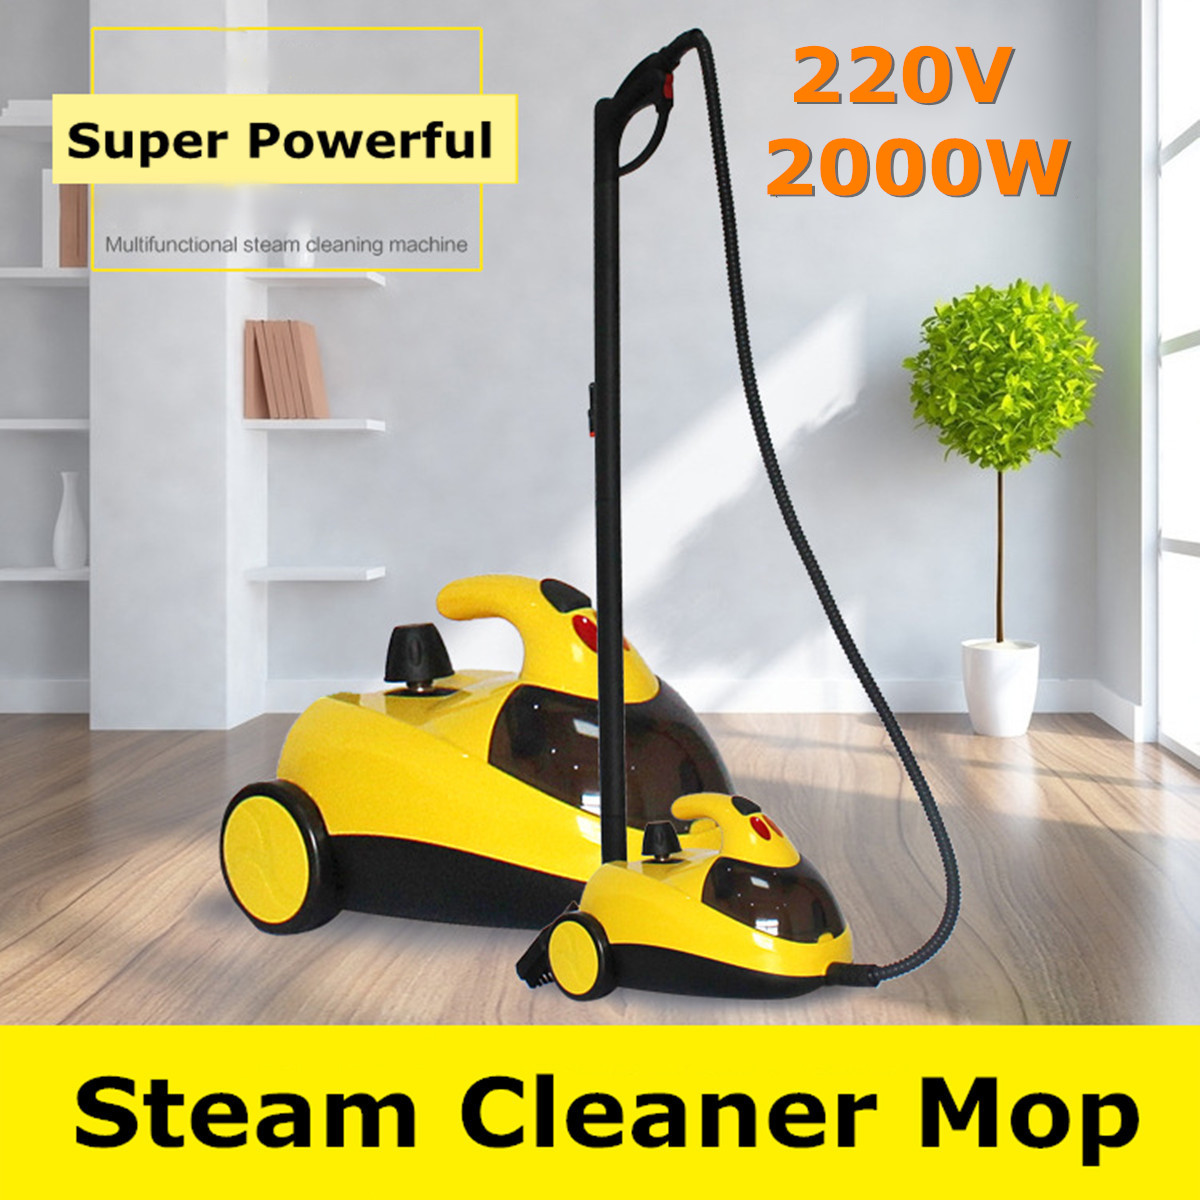 Floor Carpet Cleaner 13 In 1 220V 1.5L 1800W Bar High Pressure Steam Washer Cleaning Machine 360 Wheel For Clean Bathroom Car